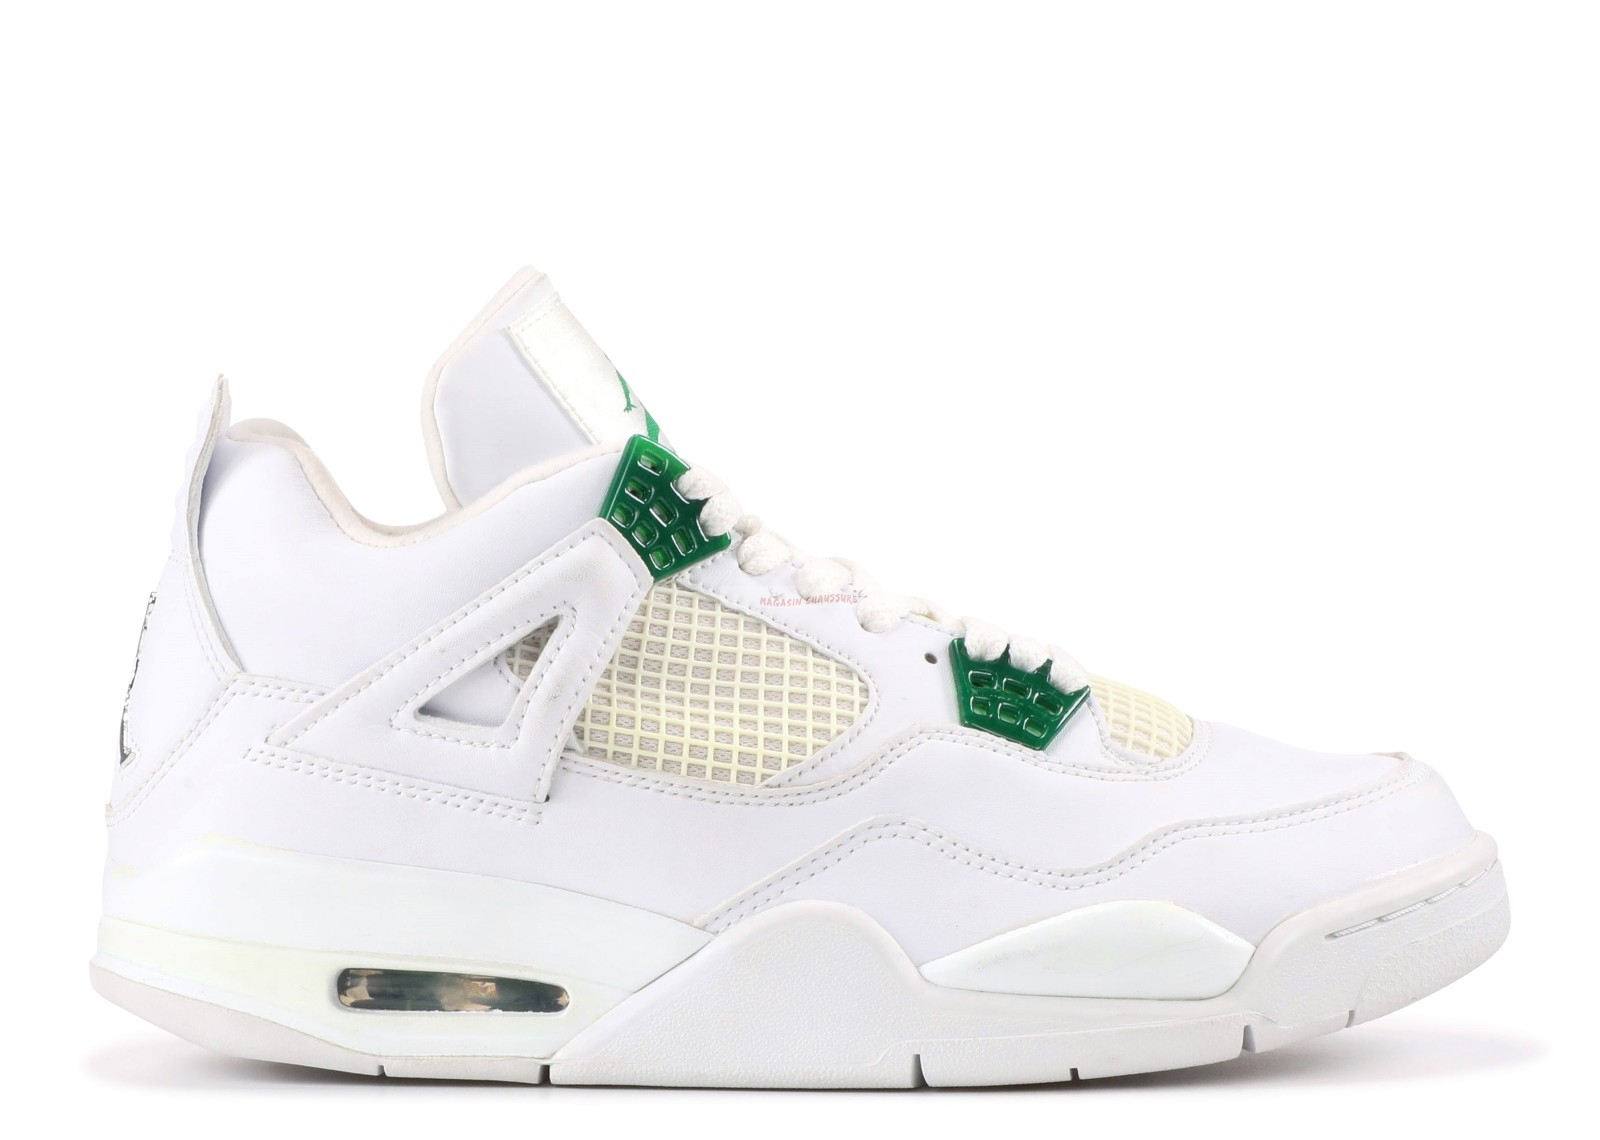 Air Jordan 4 Retro Blanc (308497-101) Chaussure de Basket